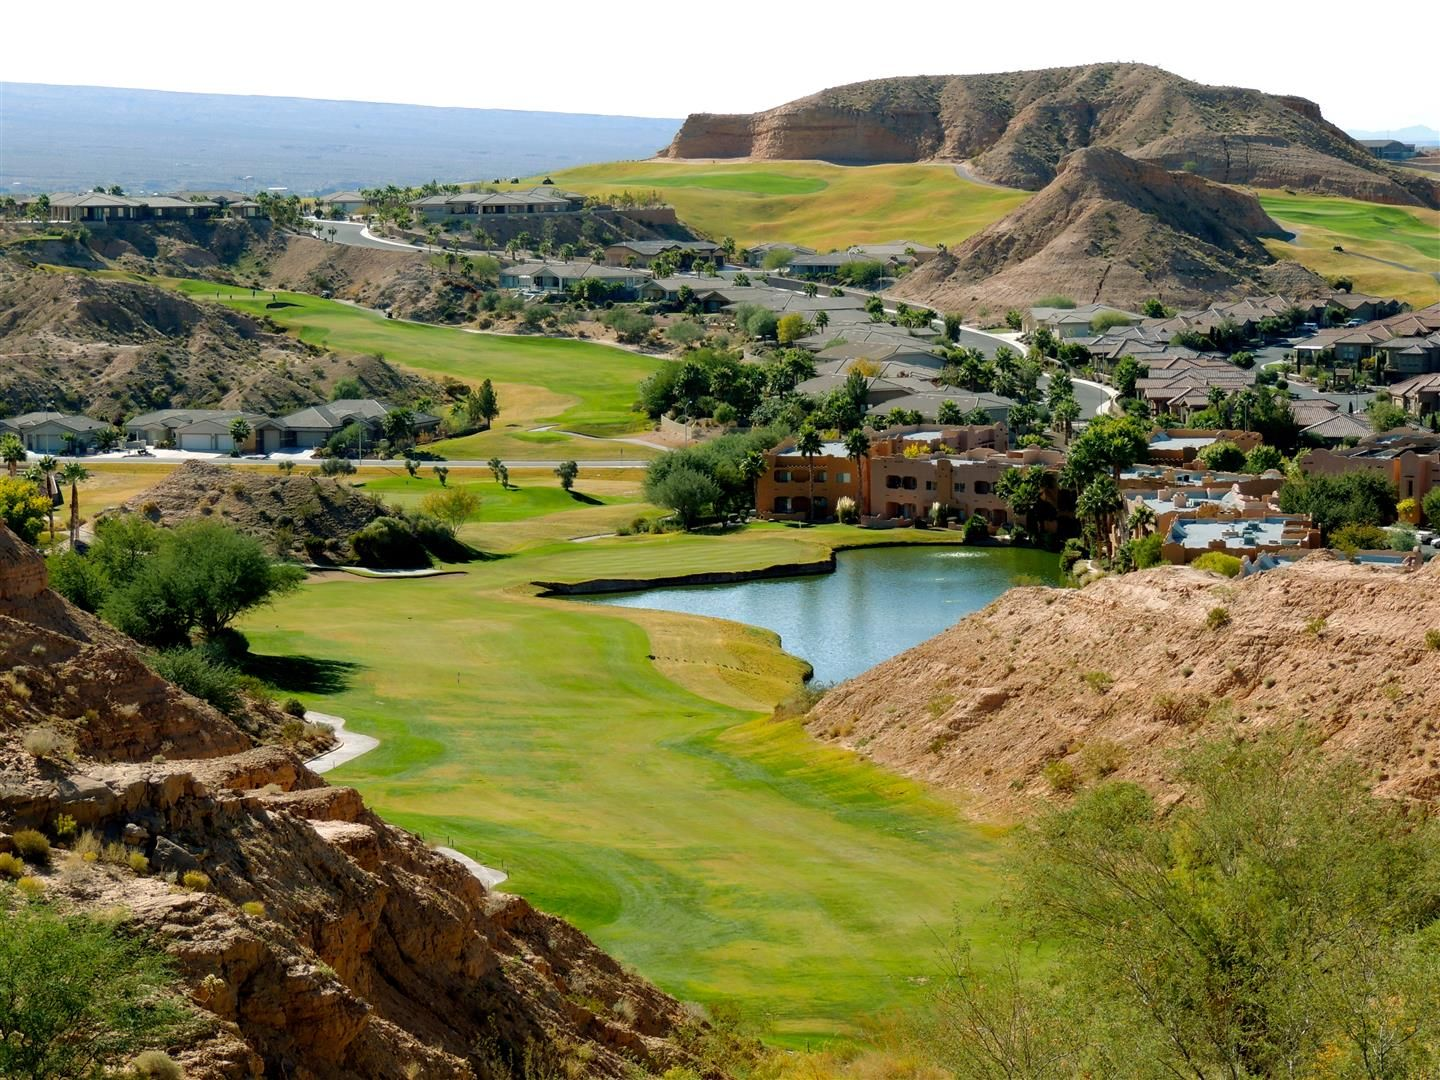 Oasis Golf Course Mesquite Nv The Palmer Course One Of The